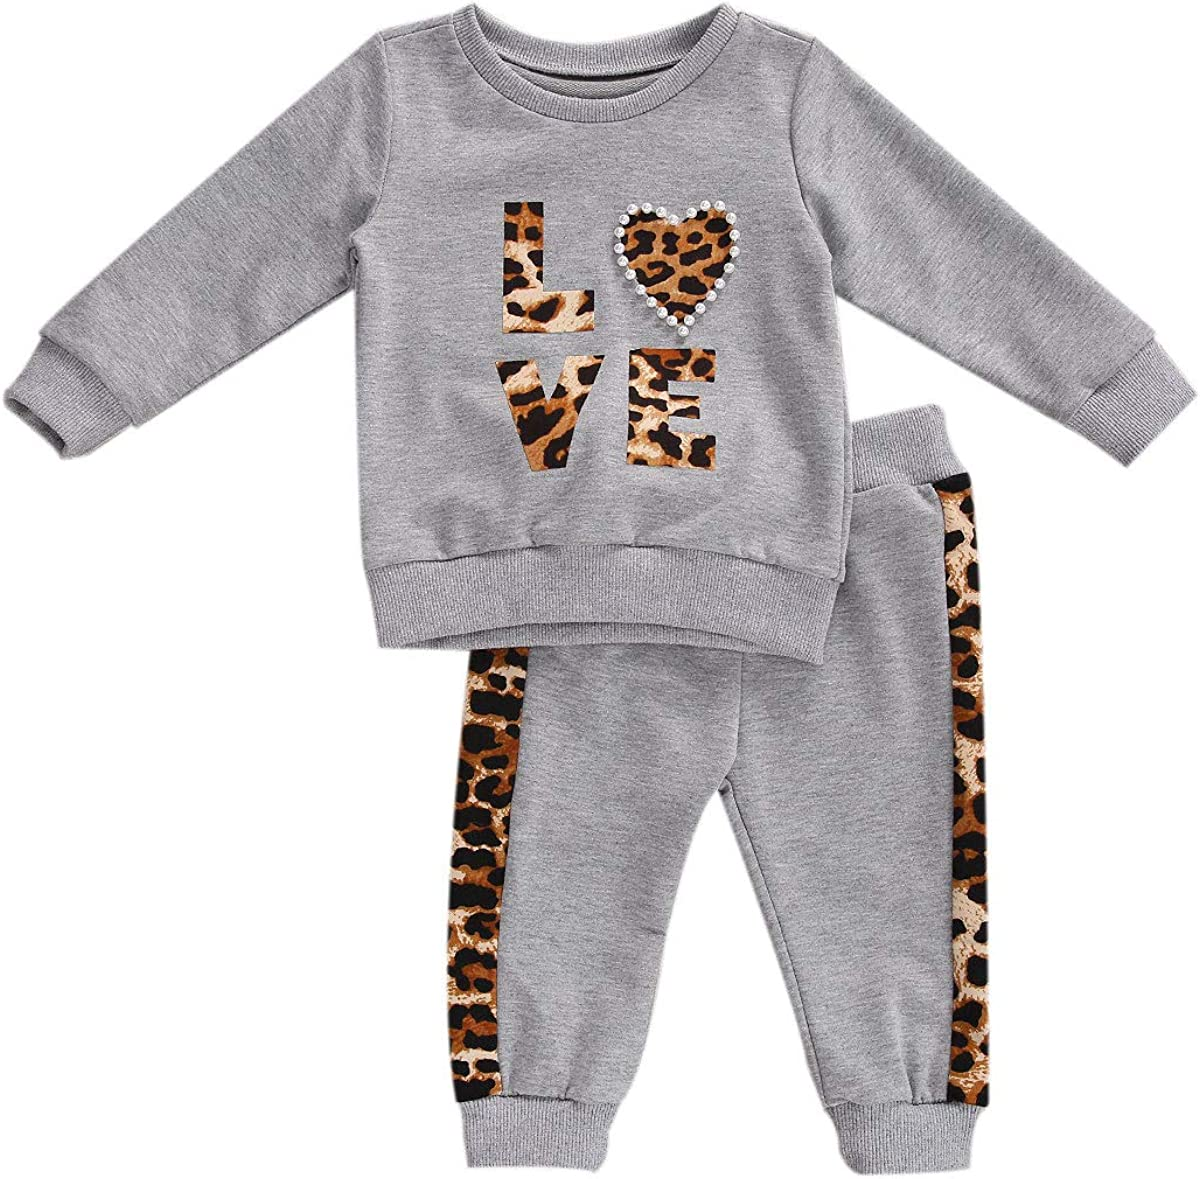 Toddler Baby Girl Outfits Set Leopard Long Sleeve Top Sweatsuit Legging Pants Baby Girl Clothing Set Fall 0-24M 2pcs